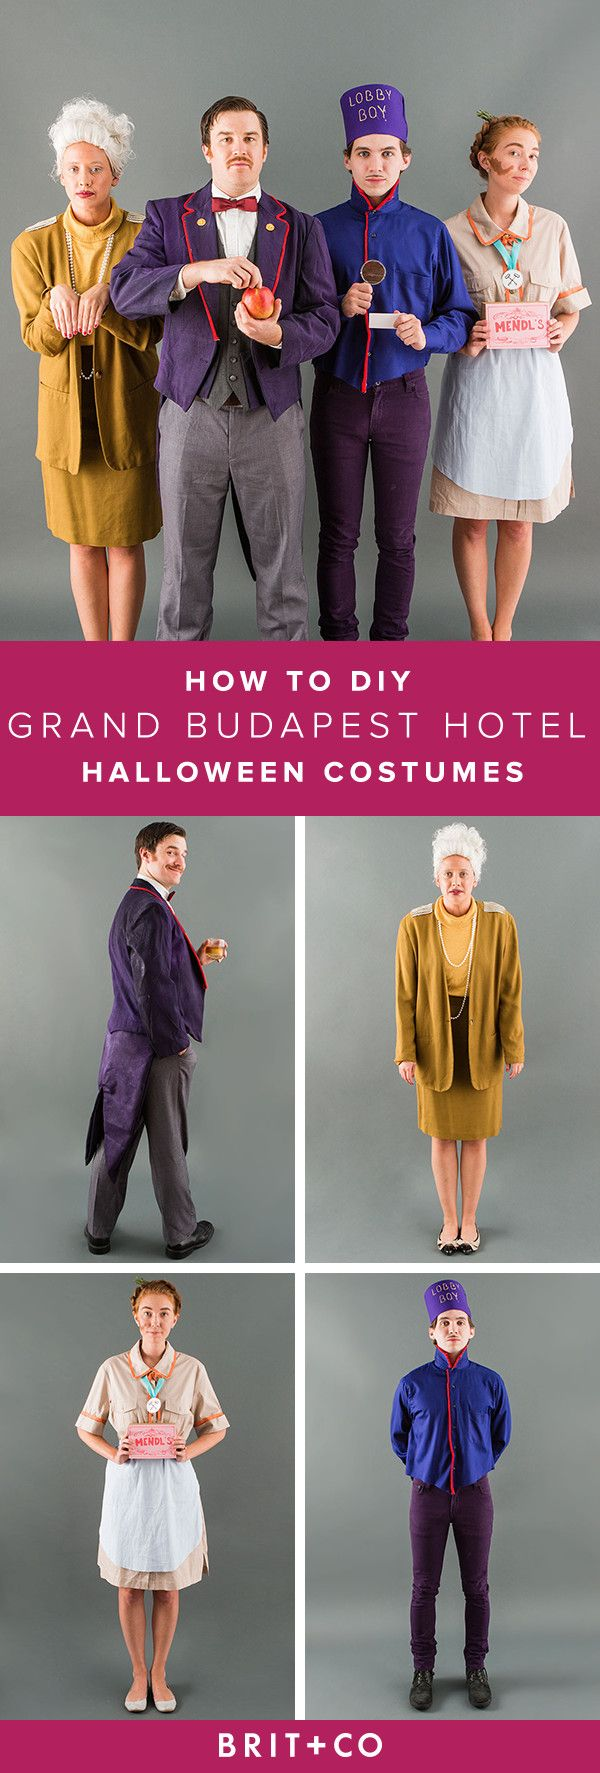 Wes Anderson fans, bookmark this tutorial ASAP! Follow this guide to turn your crew into the cast of The Grand Budapest Hotel for Halloween.